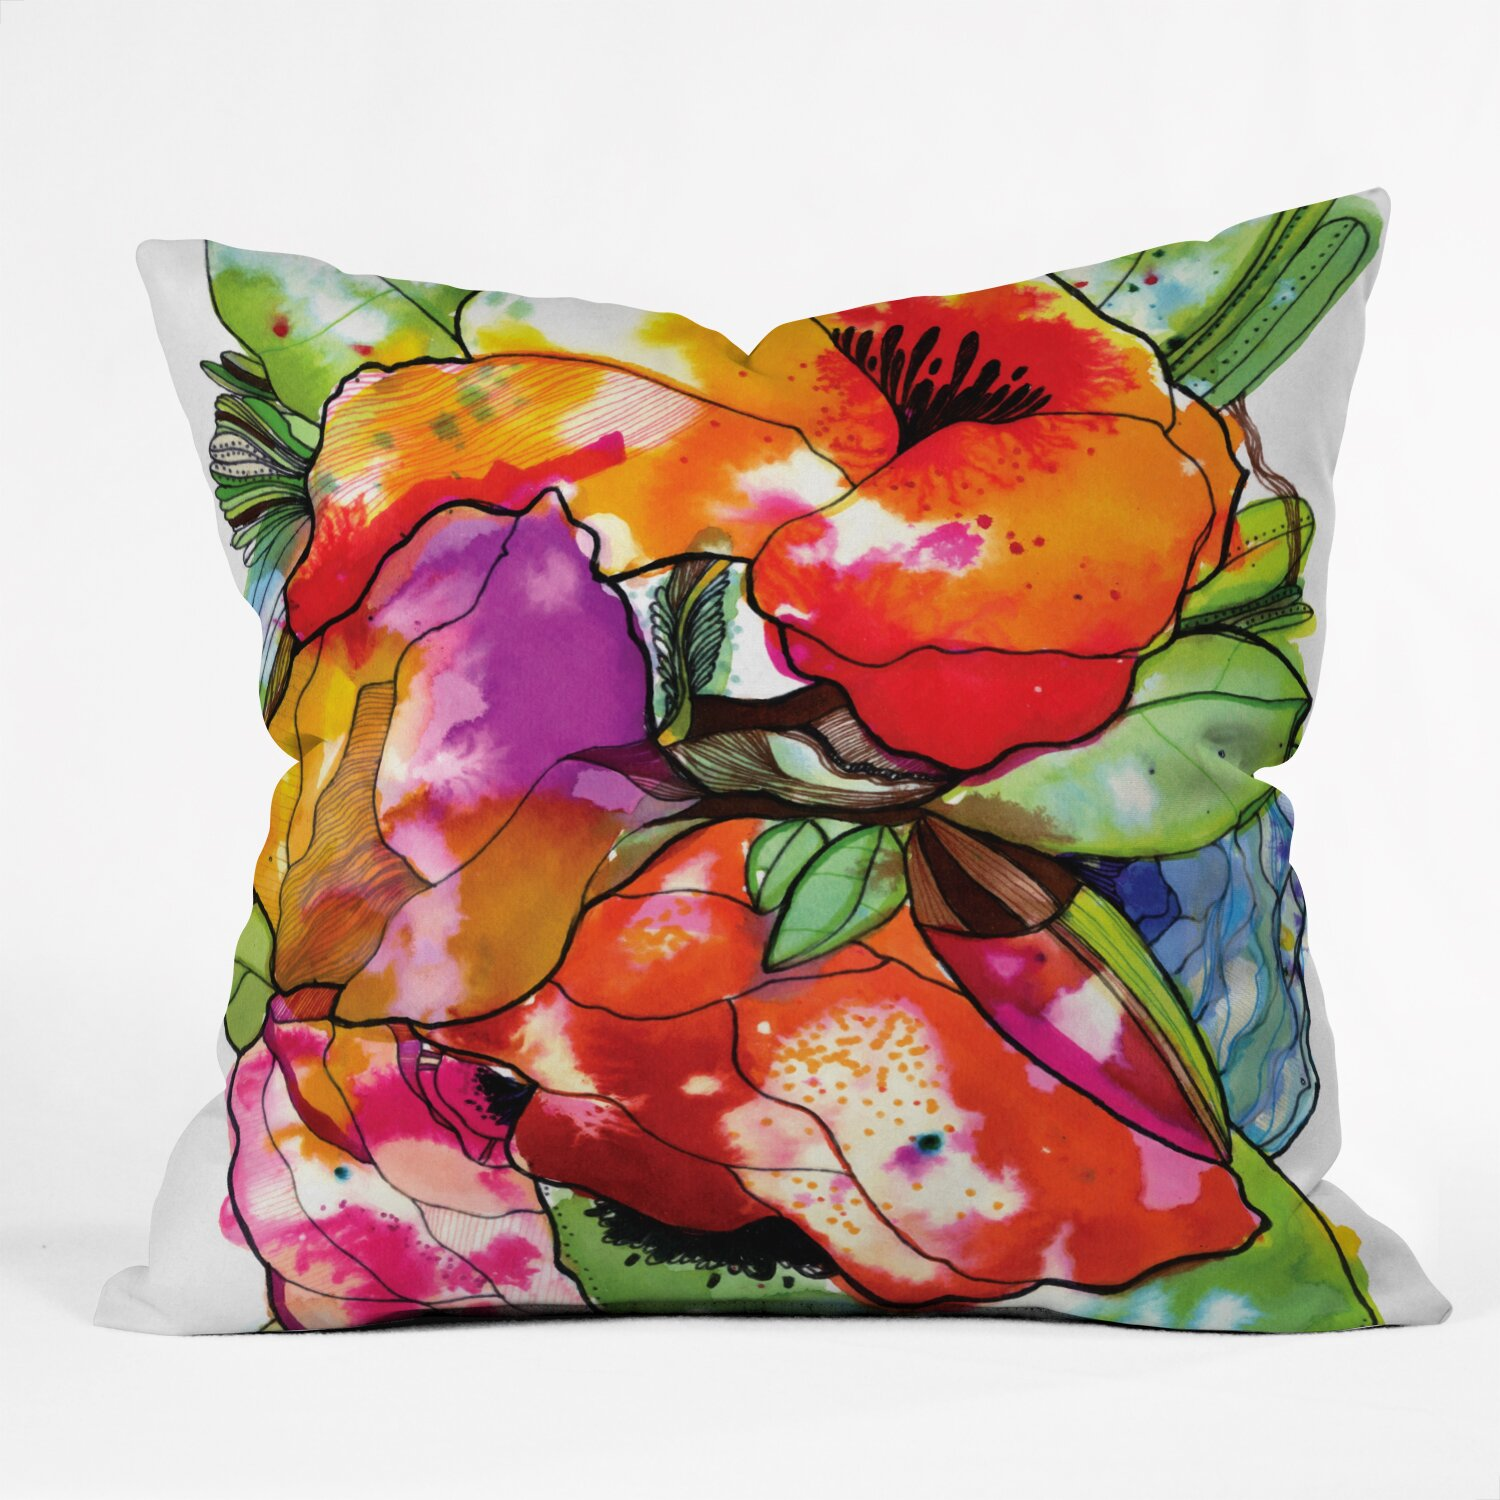 Large Flower Throw Pillow : DENY Designs Cayena Blanca Big Flowers Throw Pillow & Reviews Wayfair